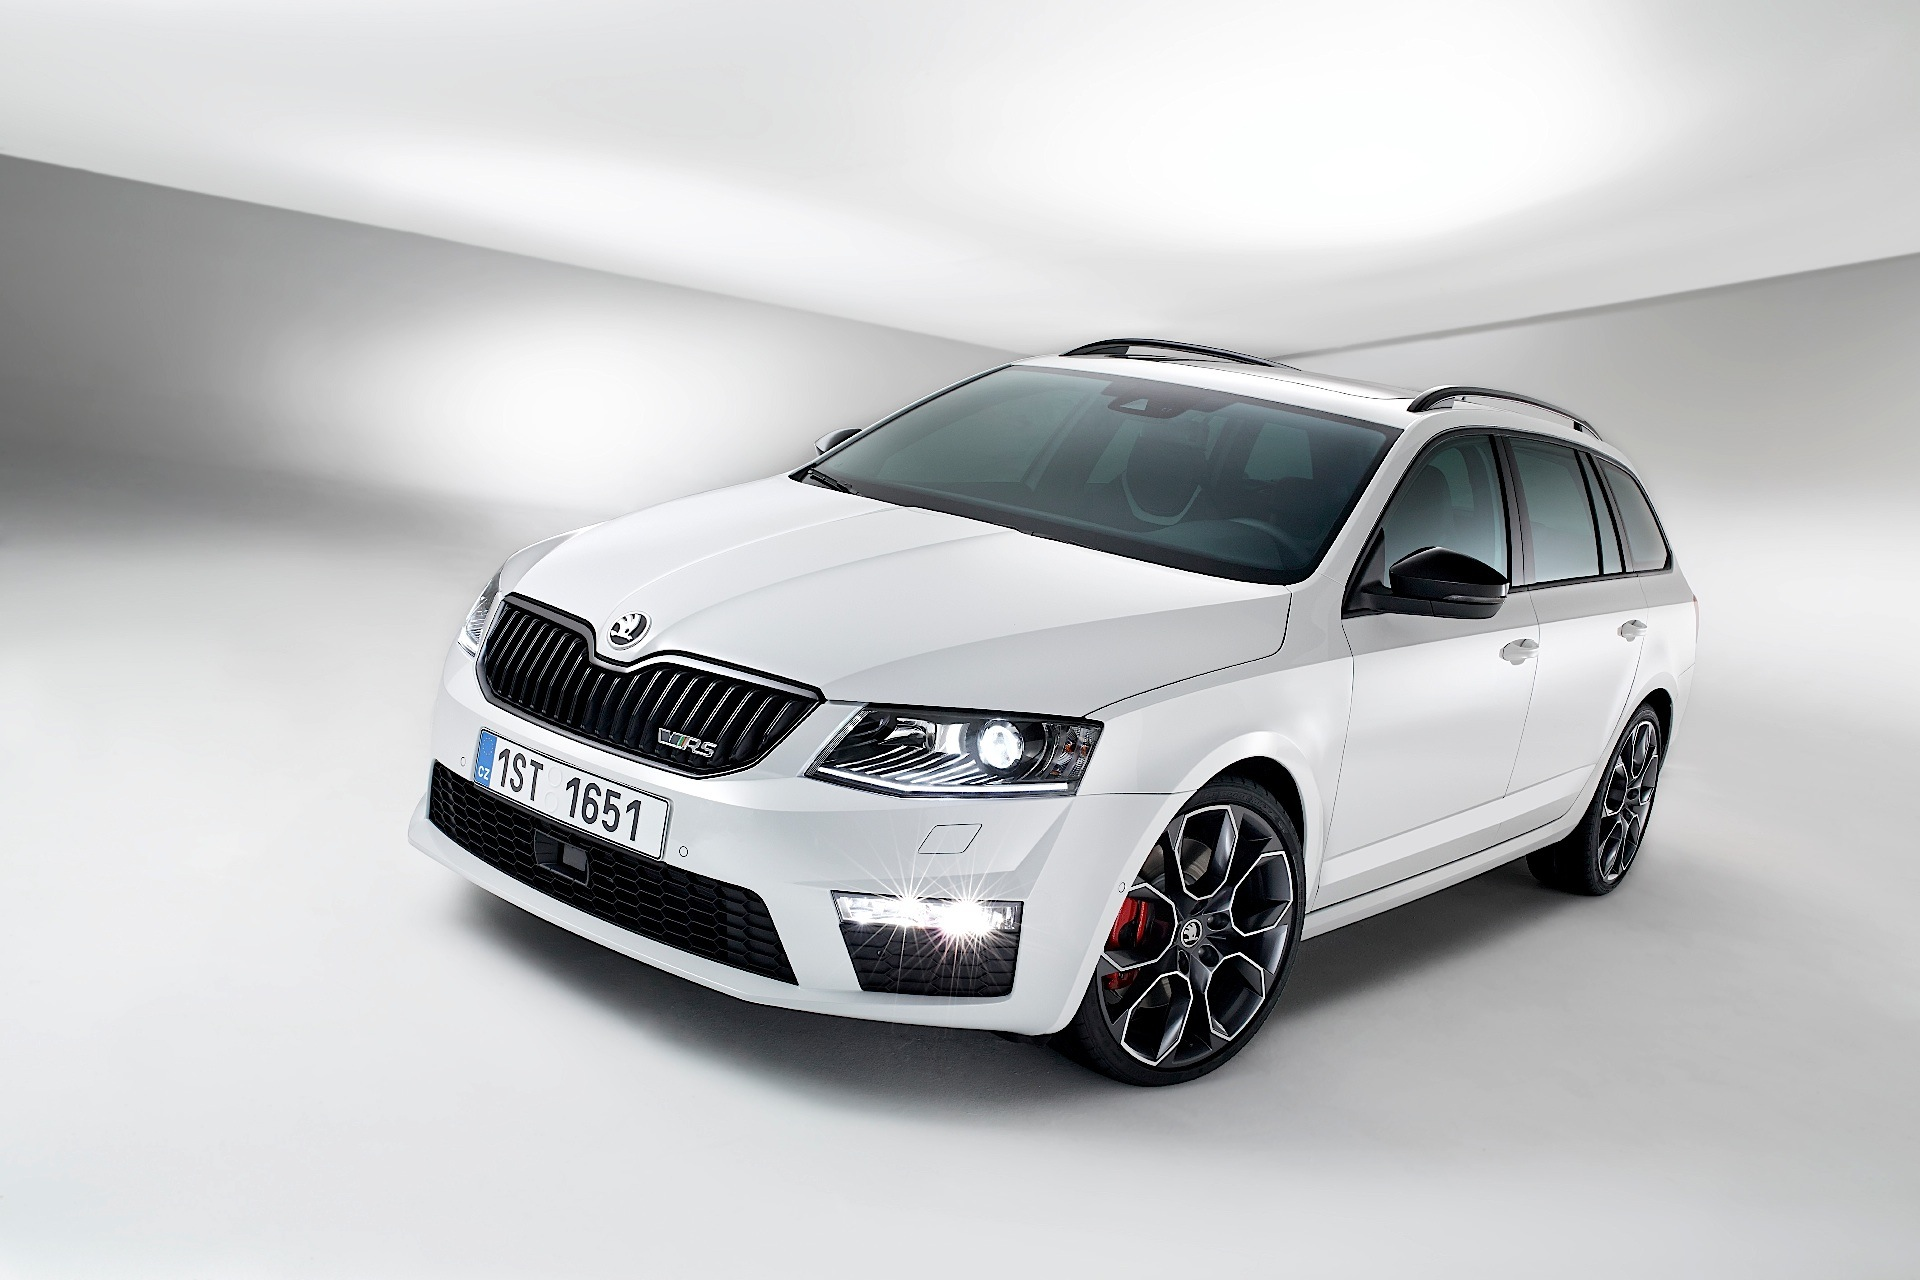 skoda octavia combi rs specs 2014 2015 2016 2017 autoevolution. Black Bedroom Furniture Sets. Home Design Ideas